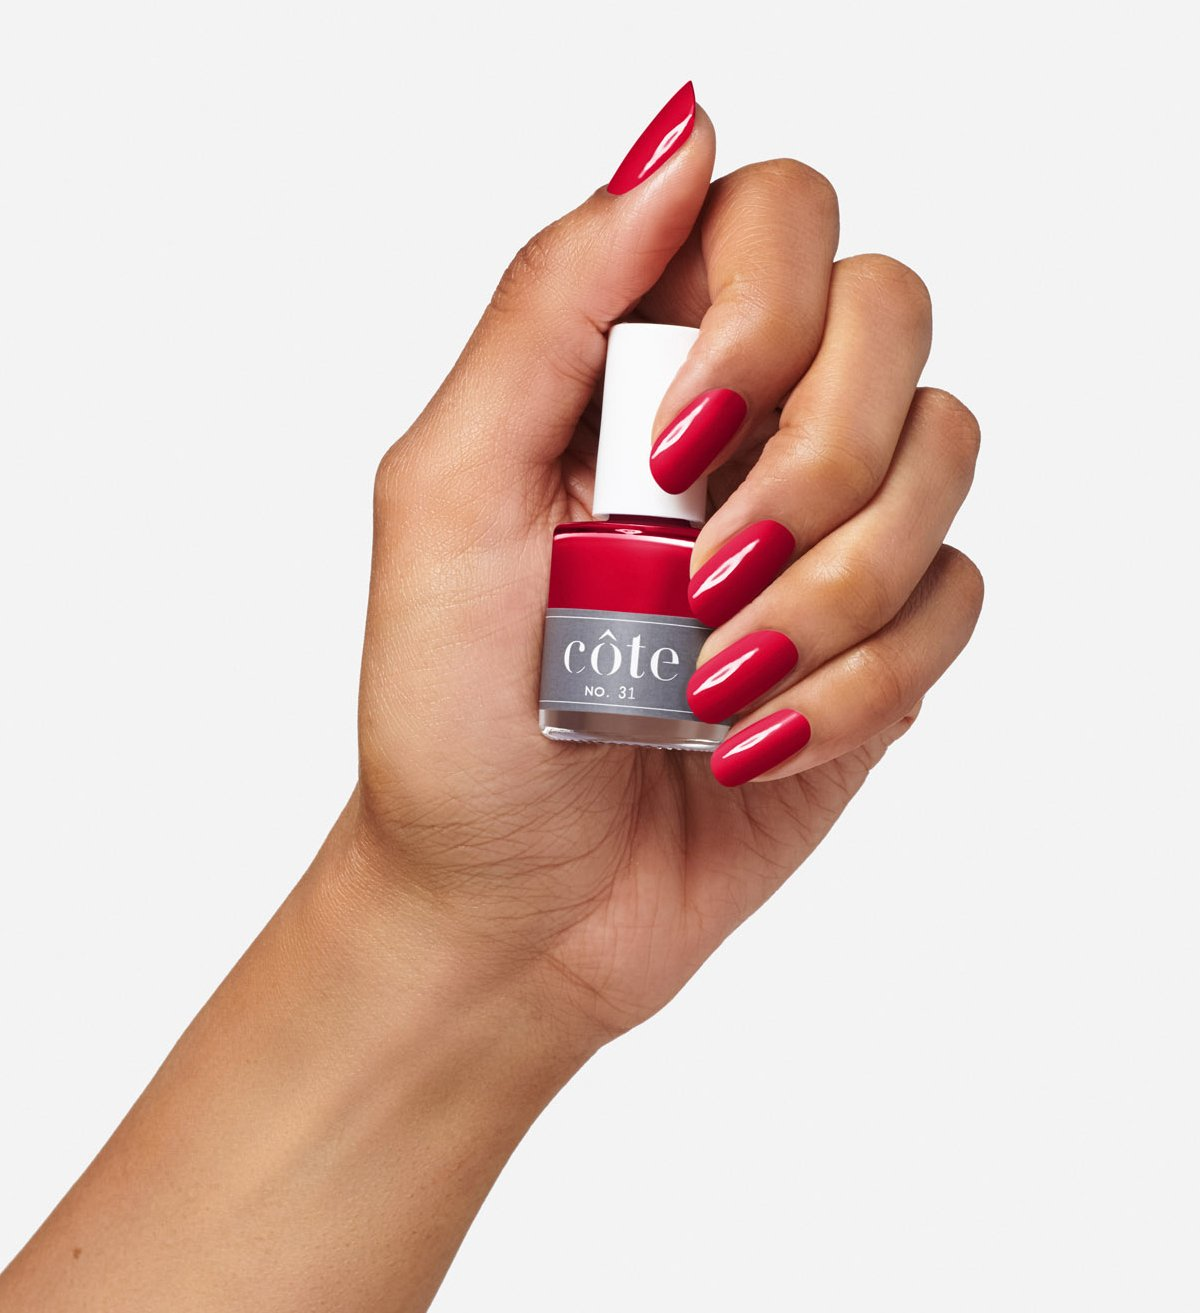 Shop No. 31 Nail Polish by cote - Let's make it a trend #explorebeautiful nailcare and nail polish